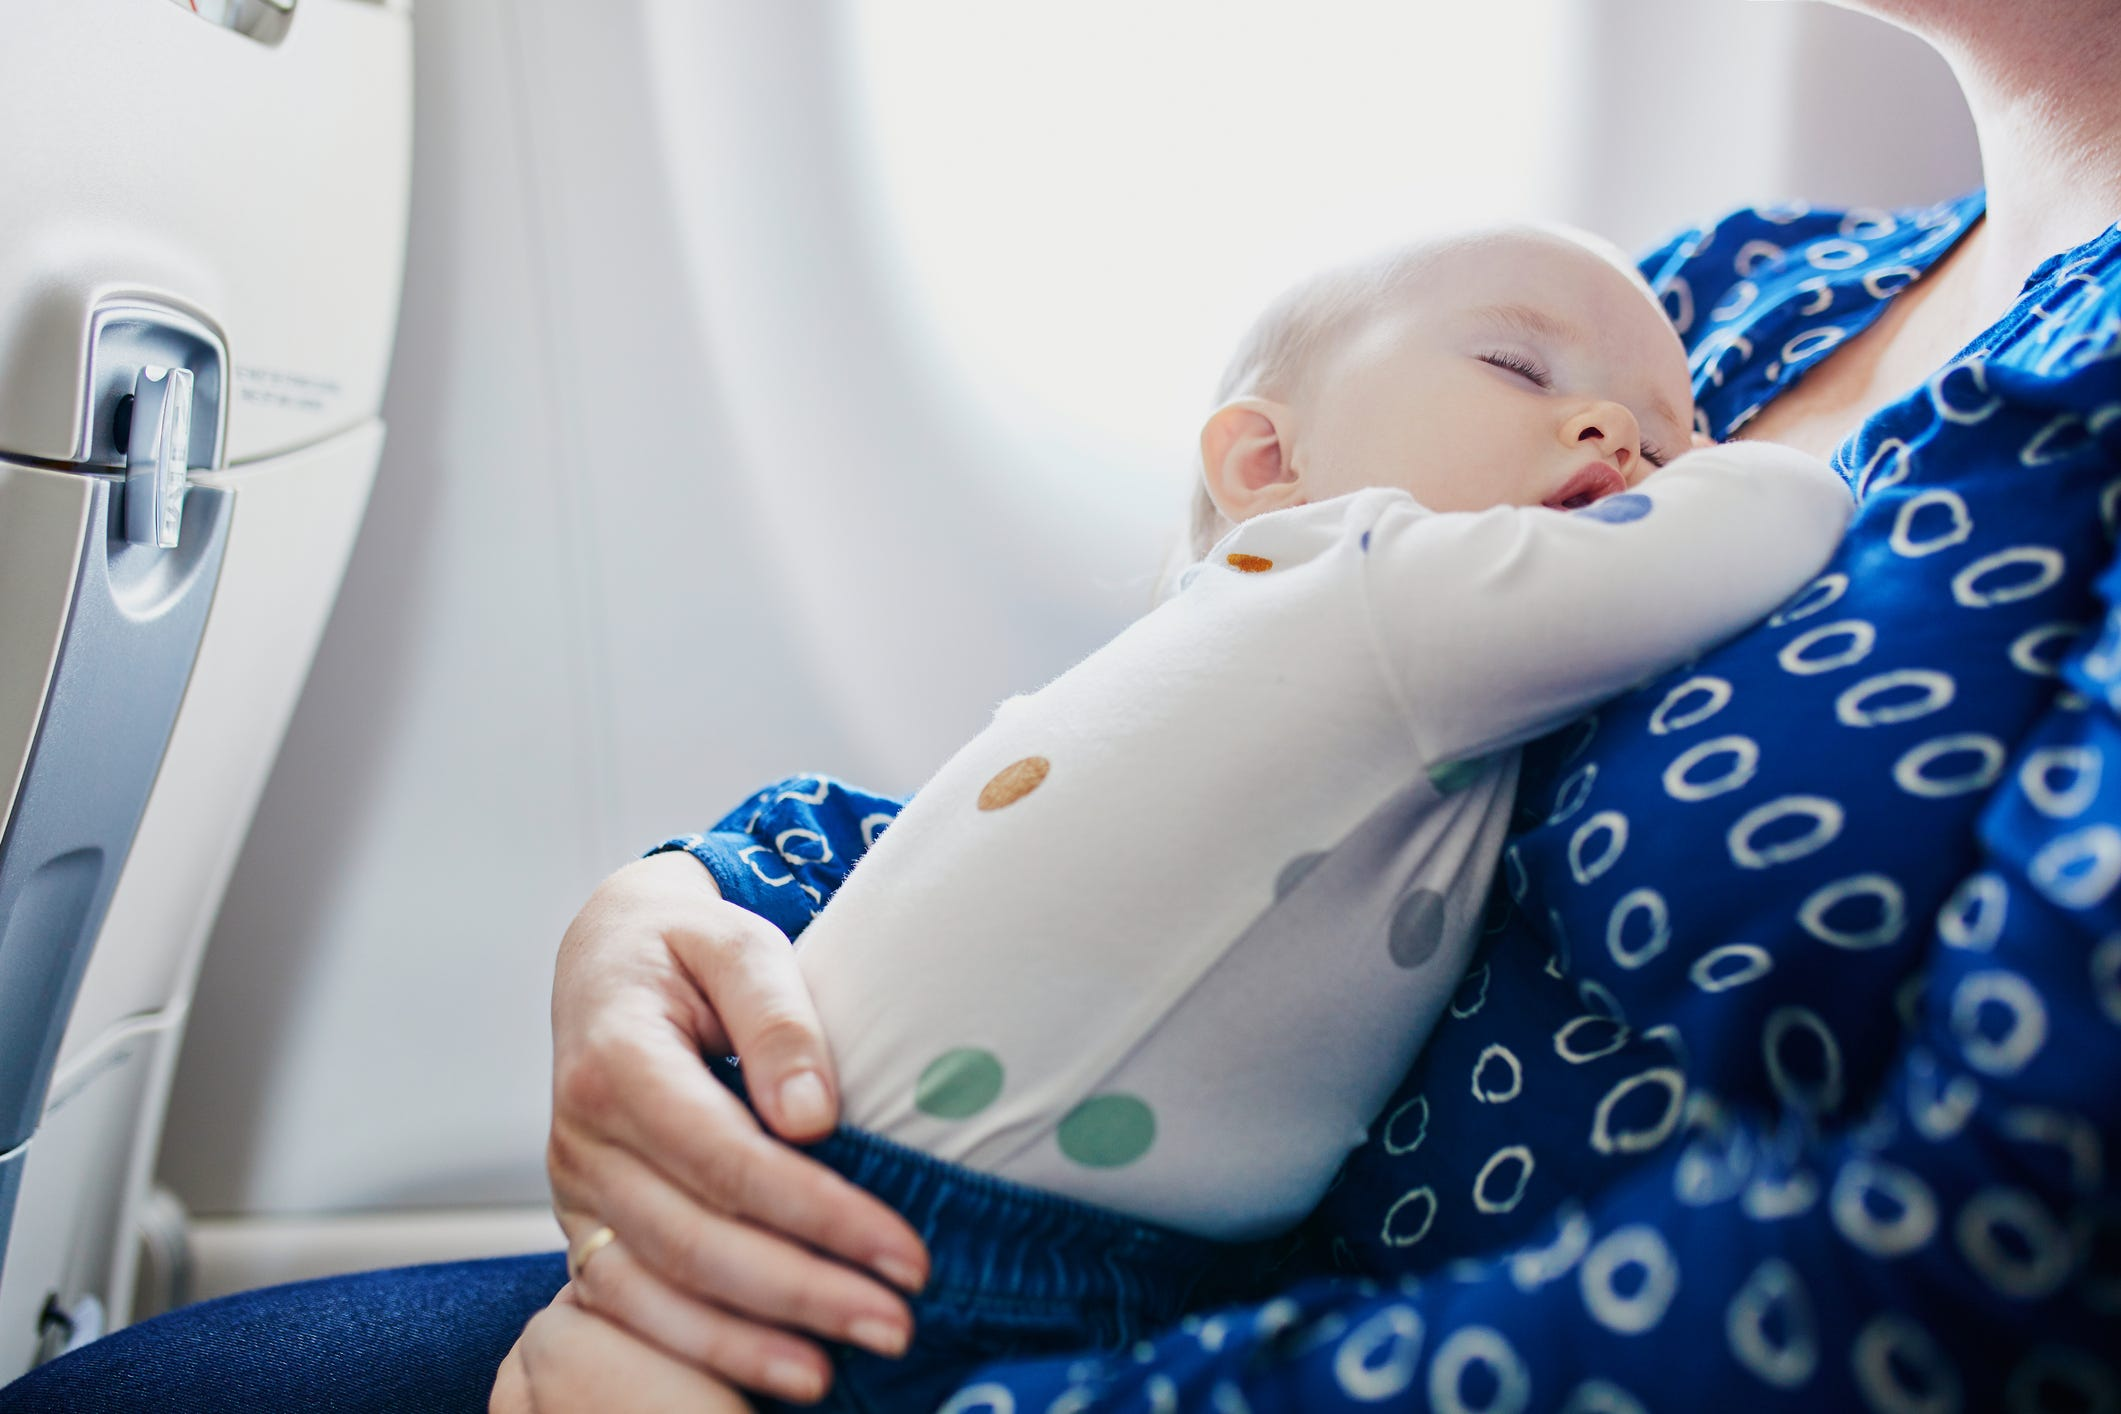 Slide 9 of 85: How can we protect babies and infants from coronavirus sincethey can't wear masks?   The virus is spread by inhaling droplets from an infected person, or by your hands picking up the virus and then touching your eyes.  Keep your child away from people that are sneezing or coughing. Regularly washing their hands and your own for at least 20 seconds after each bathroom trip and before meals will also provide some protection.  Infectious disease experts say both of those tips are better defenses against coronavirus or any influenza-like illness thanthe surgical masks sprouting up at airports around the world.